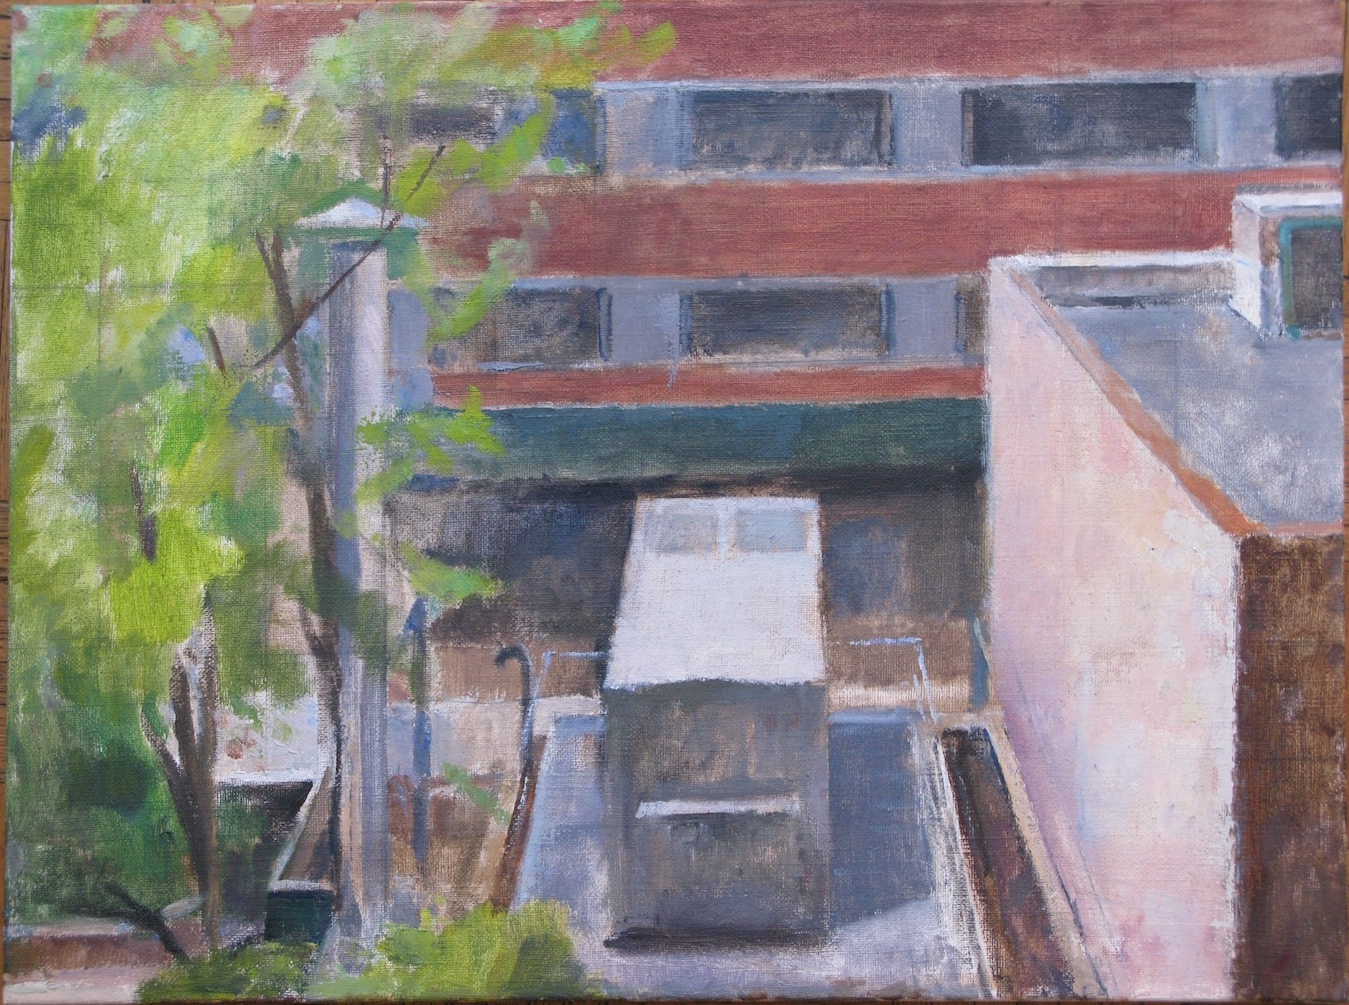 Trimble Lane Back Up Generator, 21 x 28 inches, oil on linen